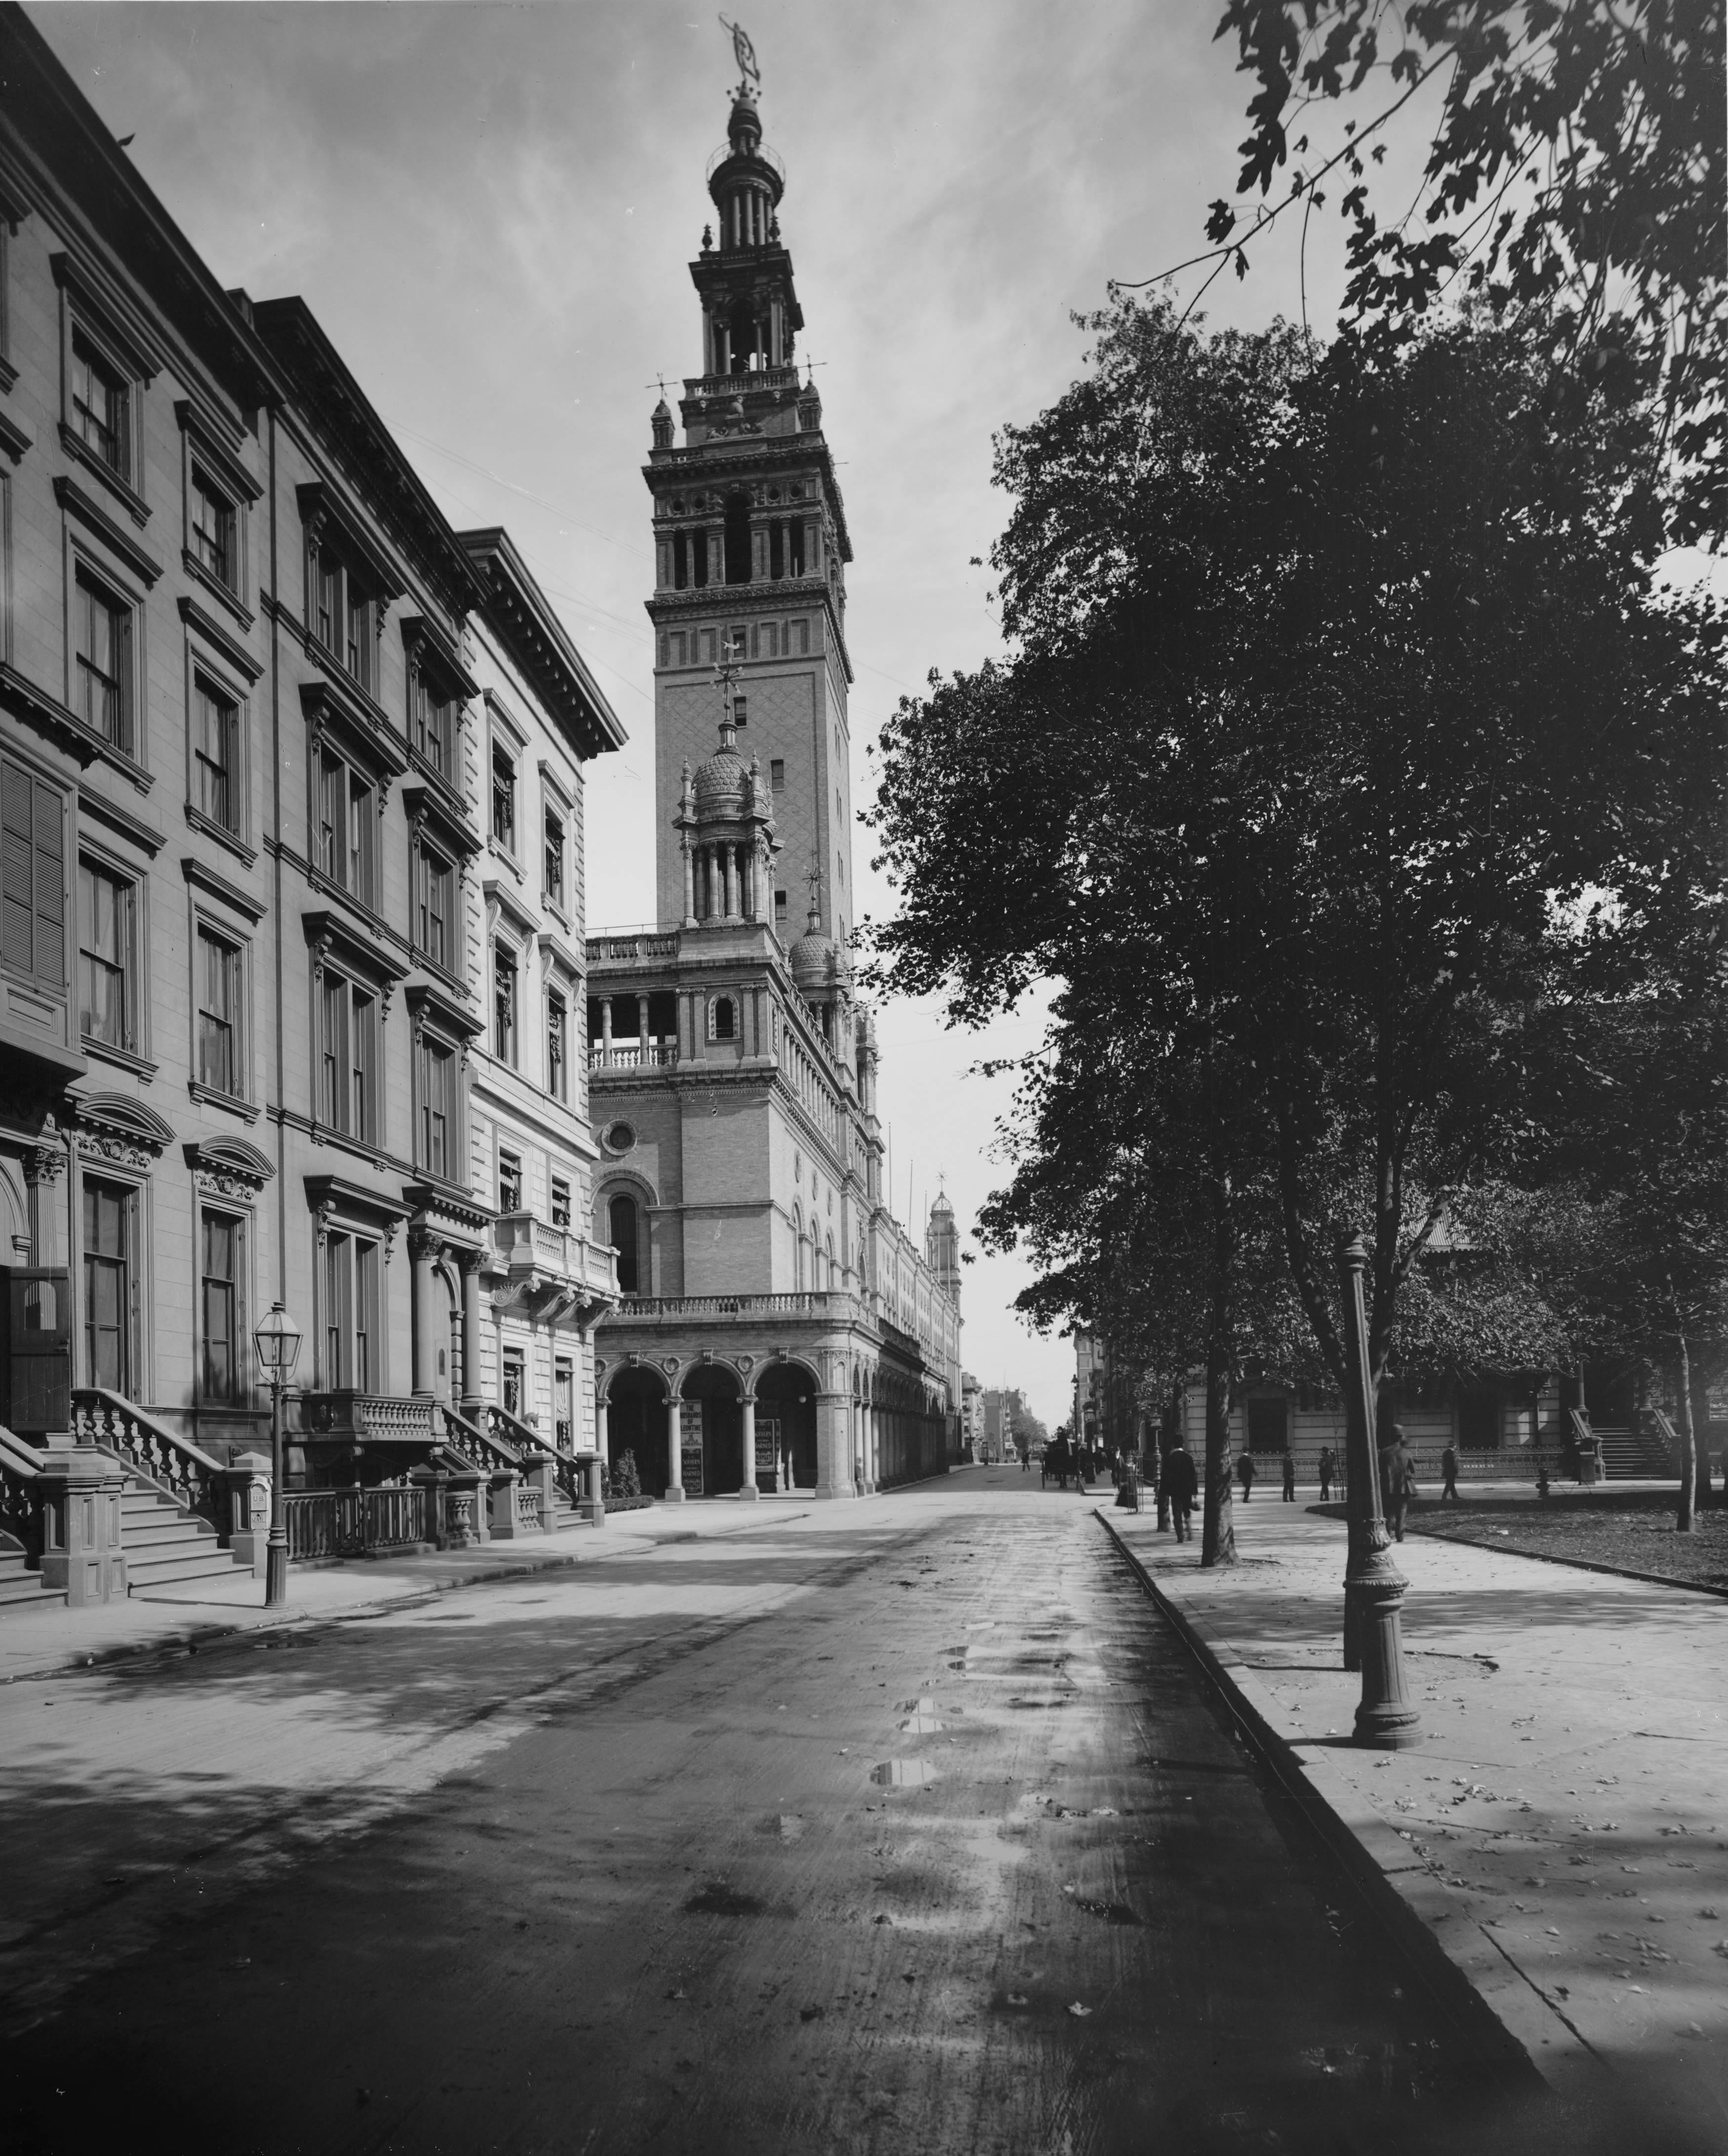 The history blog blog archive saint gaudens diana to - History of madison square garden ...